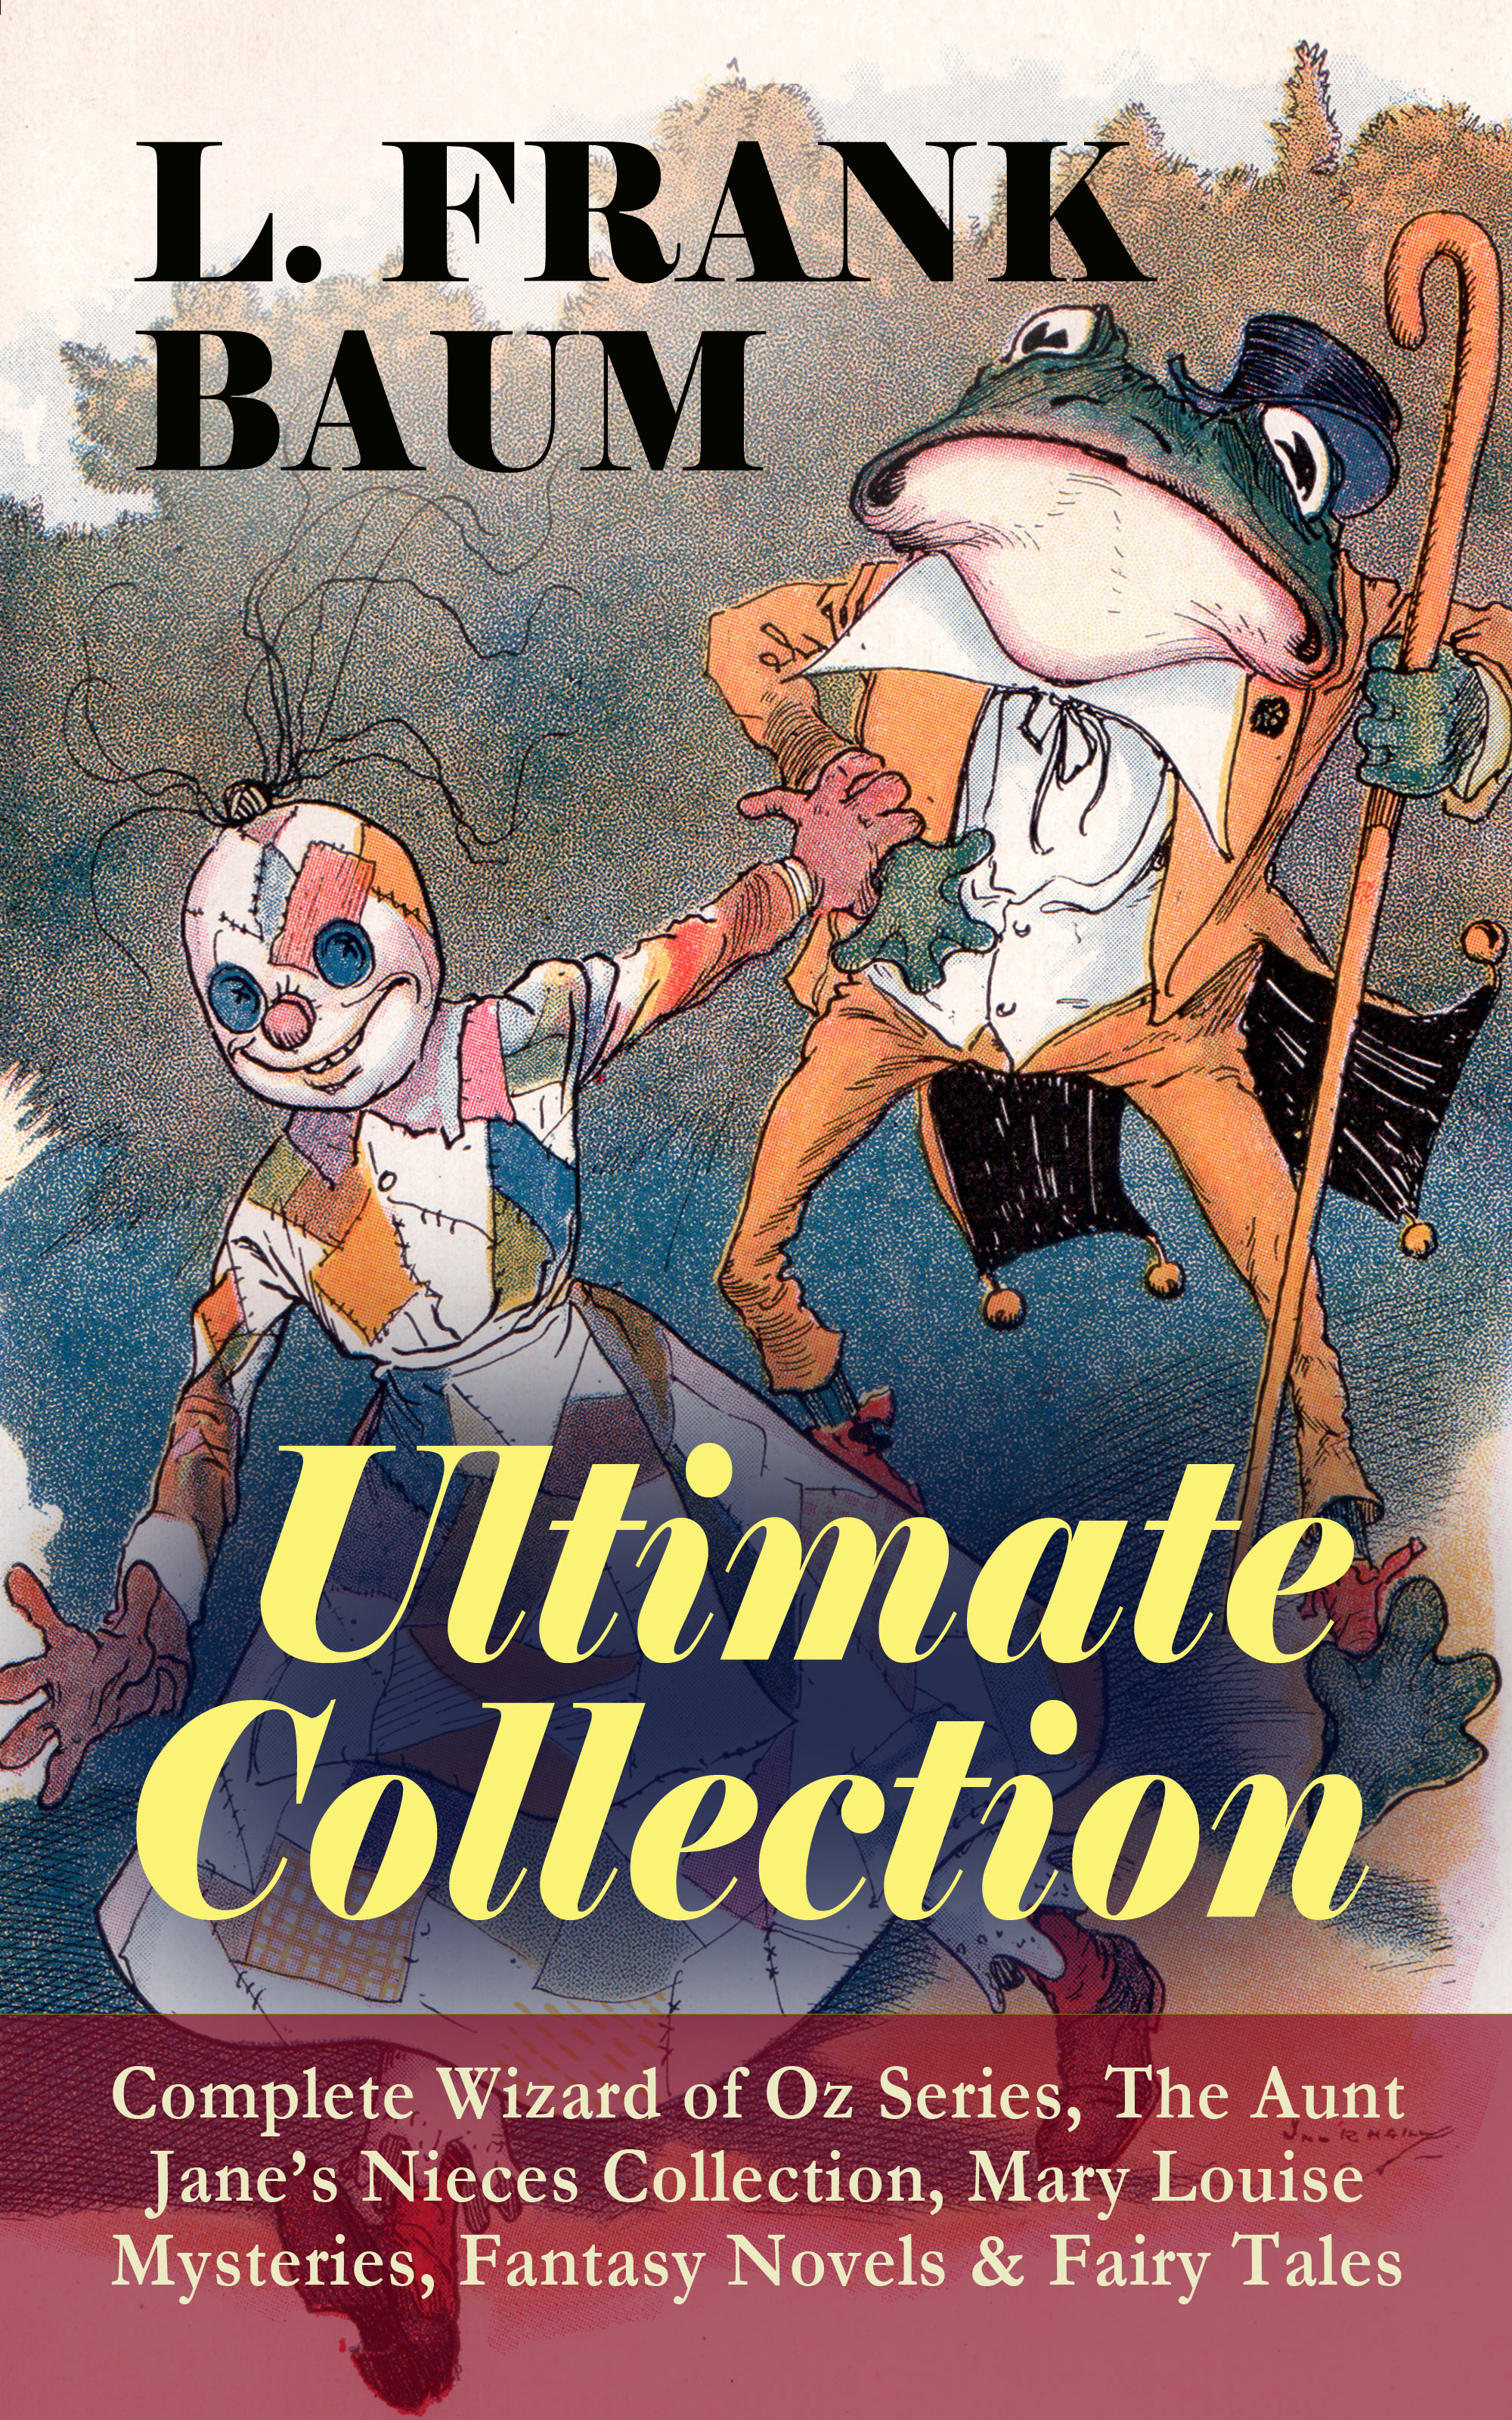 L. Frank Baum L. FRANK BAUM - Ultimate Collection: Complete Wizard of Oz Series, The Aunt Jane's Nieces Collection, Mary Louise Mysteries, Fantasy Novels & Fairy Tales цена